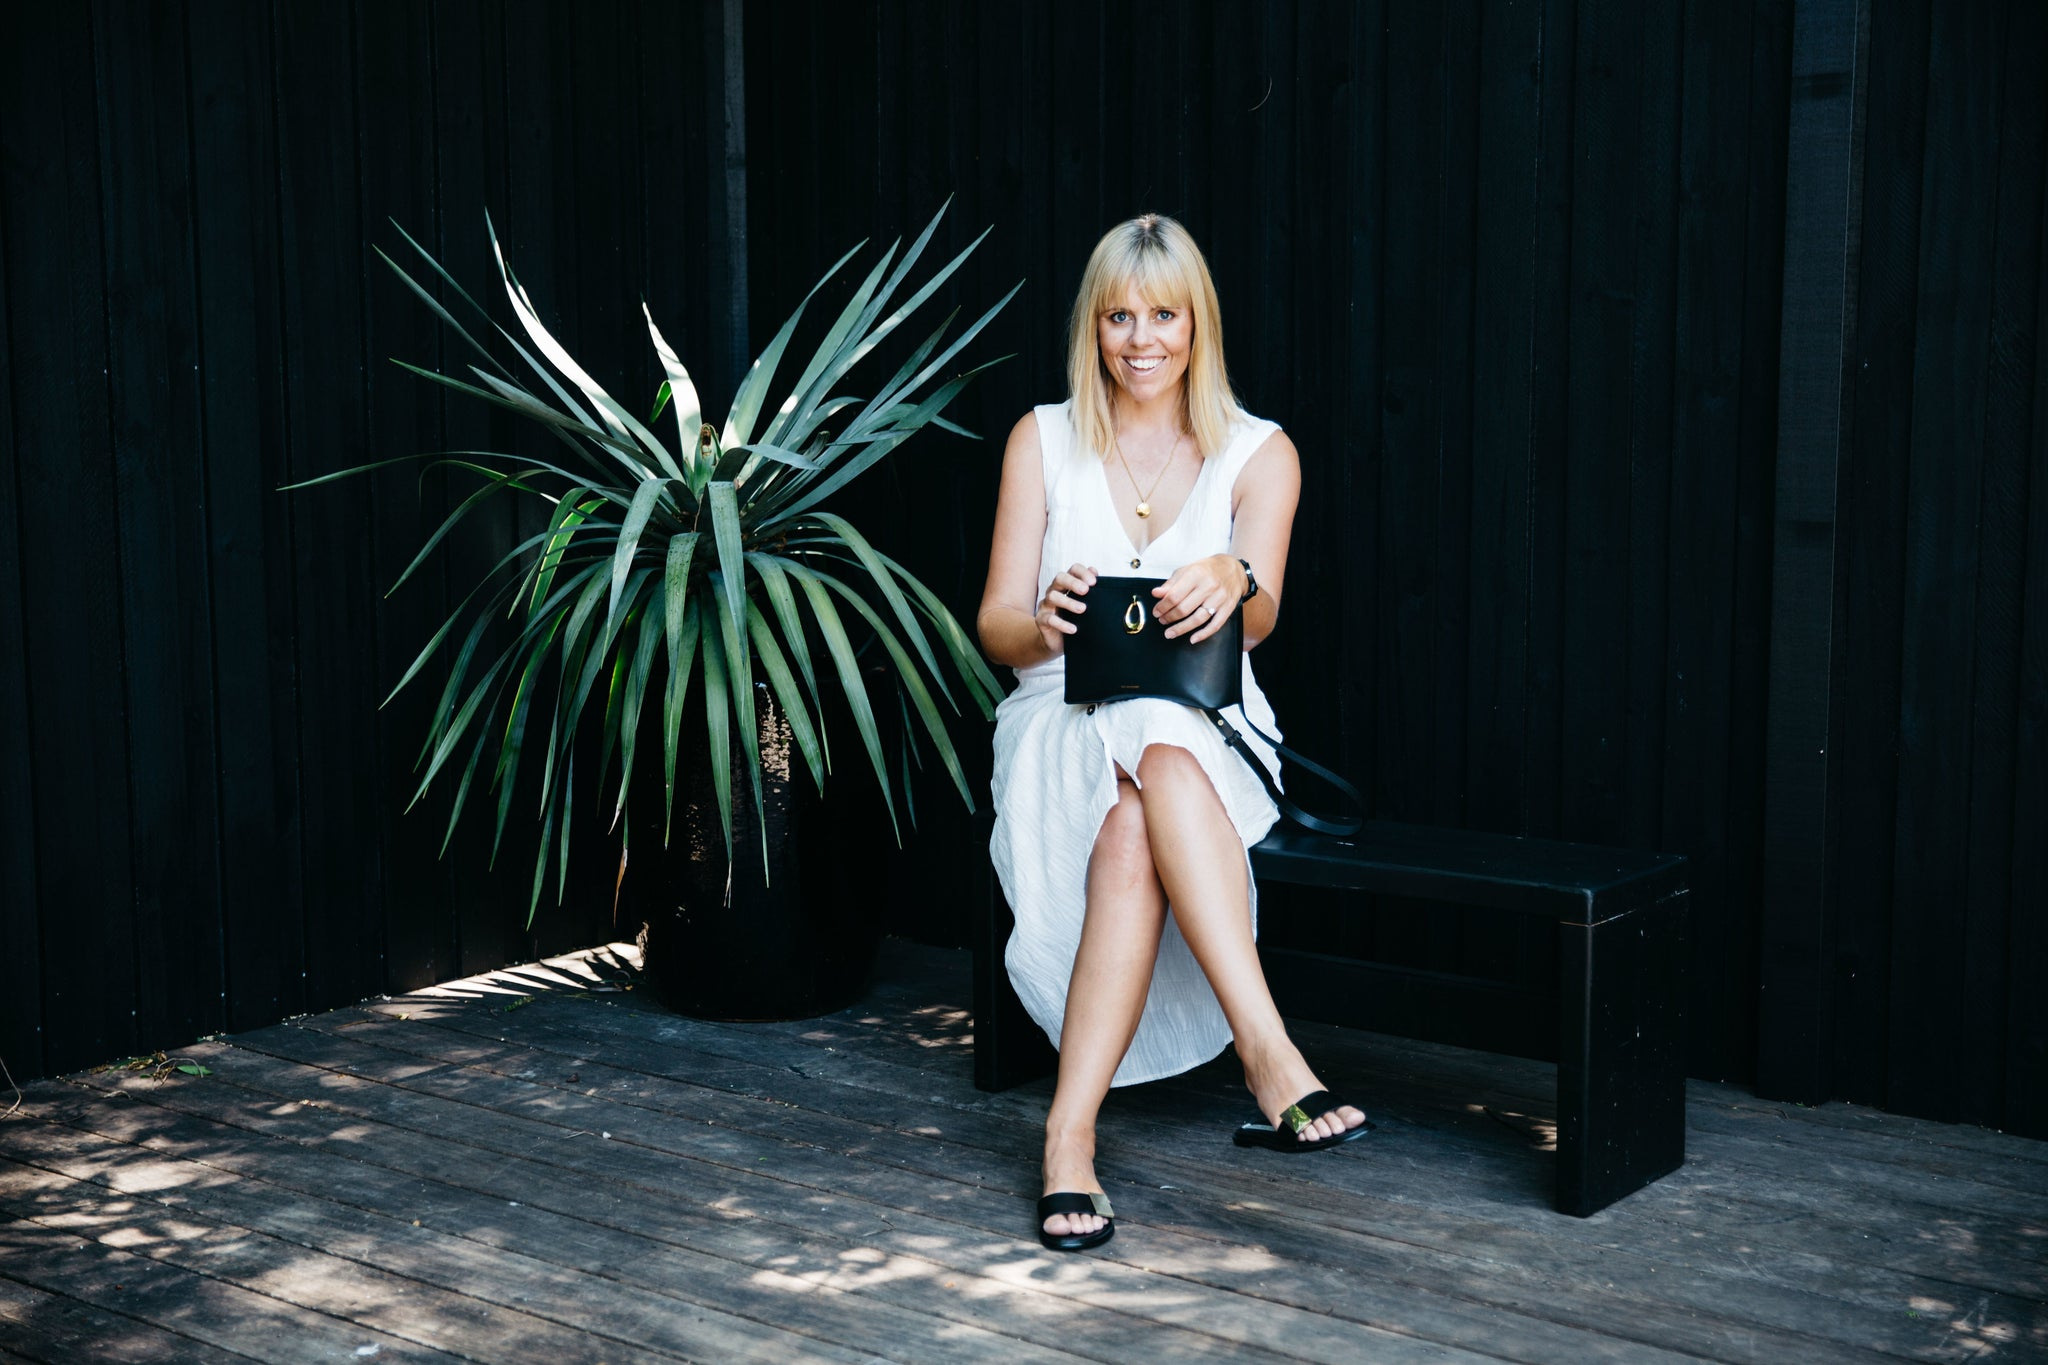 BALINCOURT FEATURES IN STYLE MAGAZINE WHERE I SHARE THE INSPIRATION BEHIND THE LABEL AND WHY I MOVED TO BYRON BAY